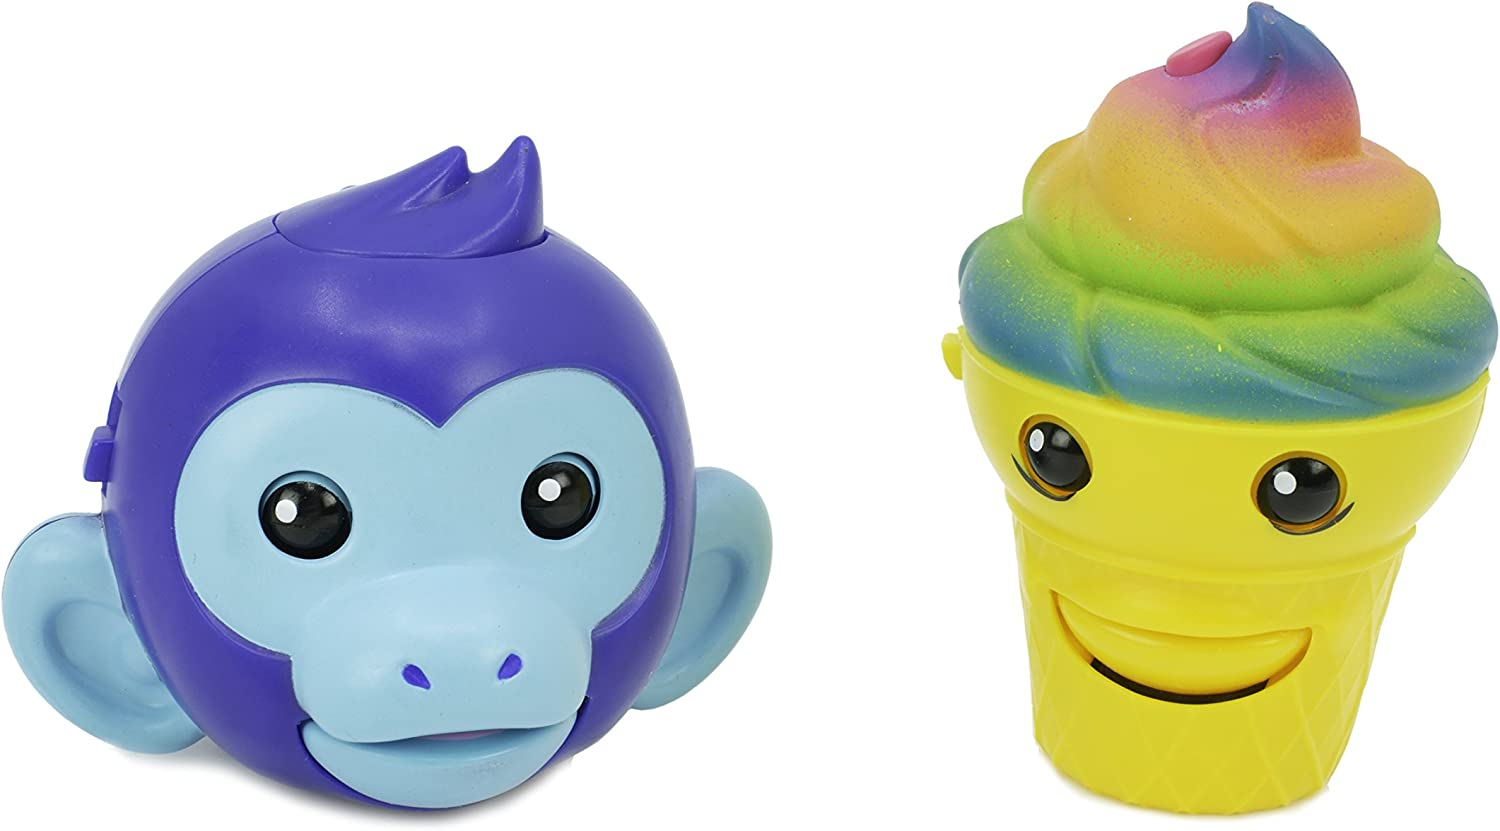 Mojimoto Monkey & Ice Cream Repeating Talk-Back Toy That Records & Repeats and Lip-syncs to Music! (Styles May Vary) by Cepia